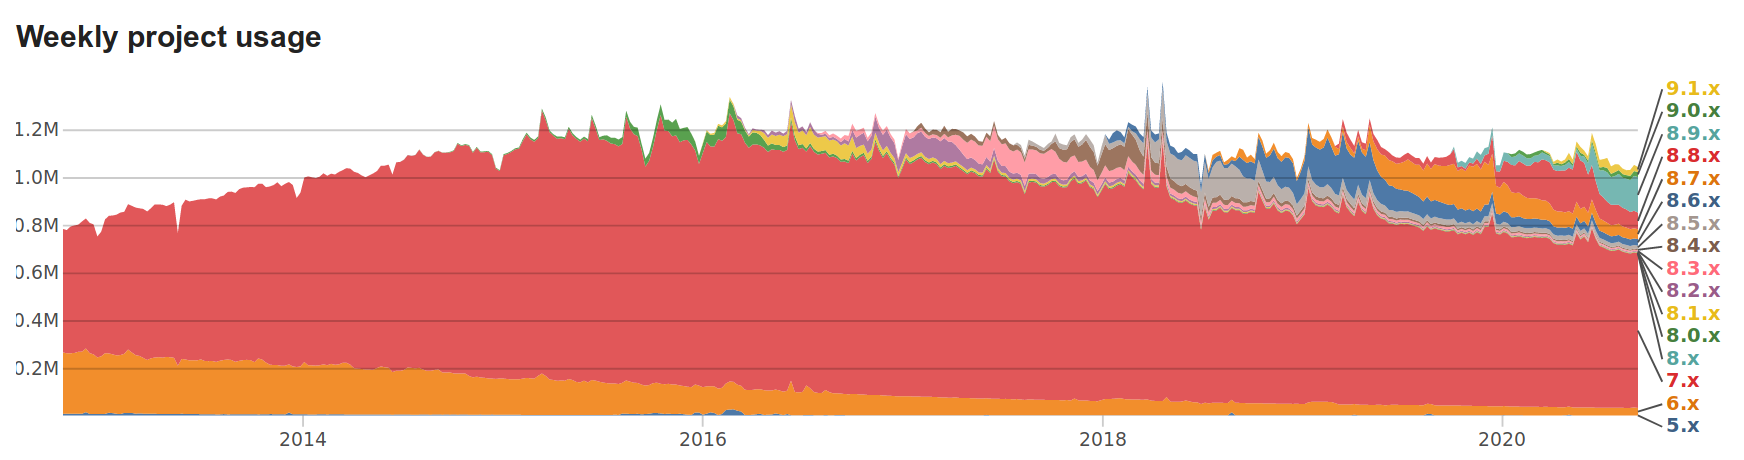 Drupal core weekly project usage